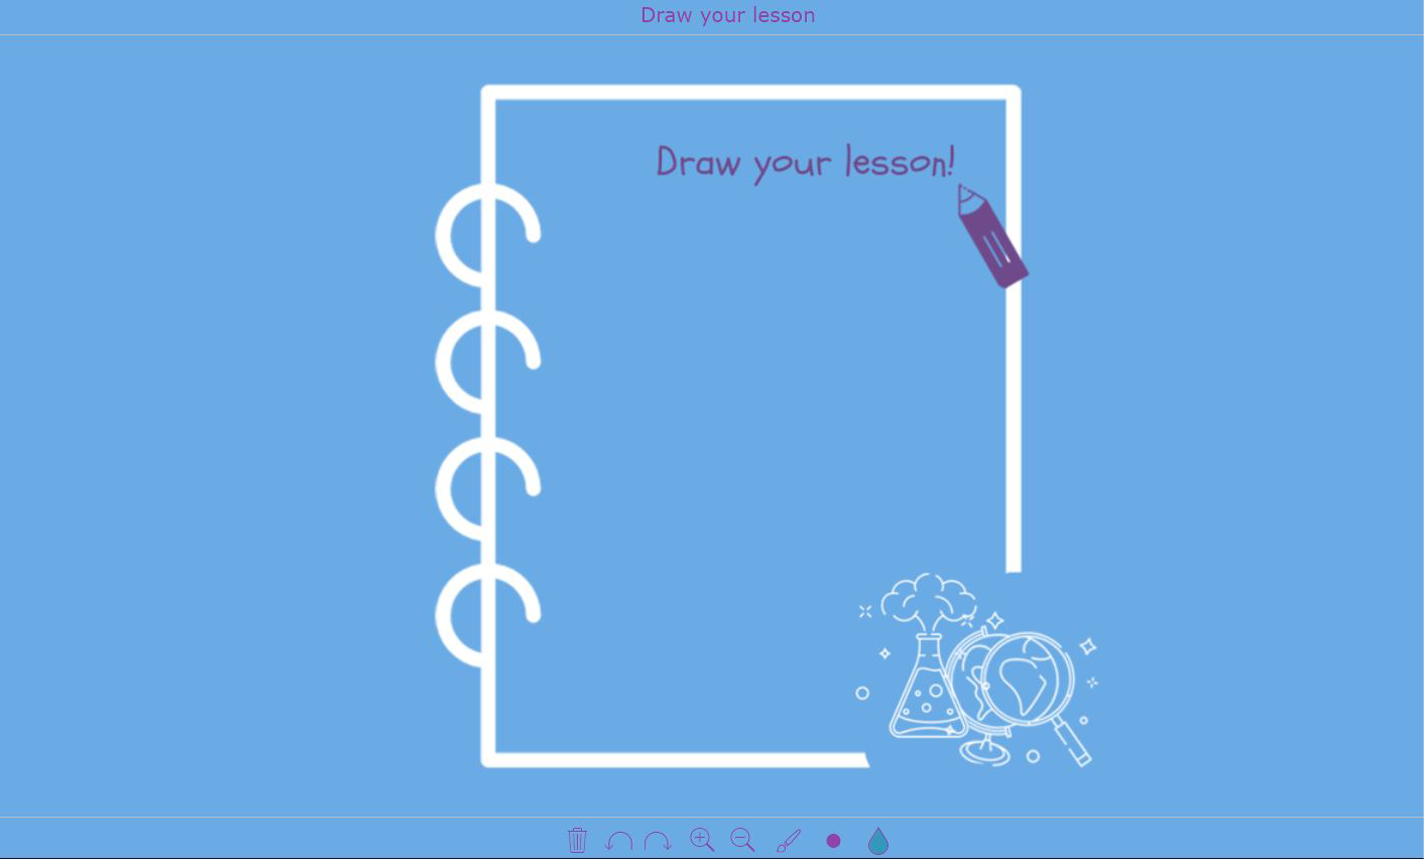 digital exit ticket - Draw your lesson